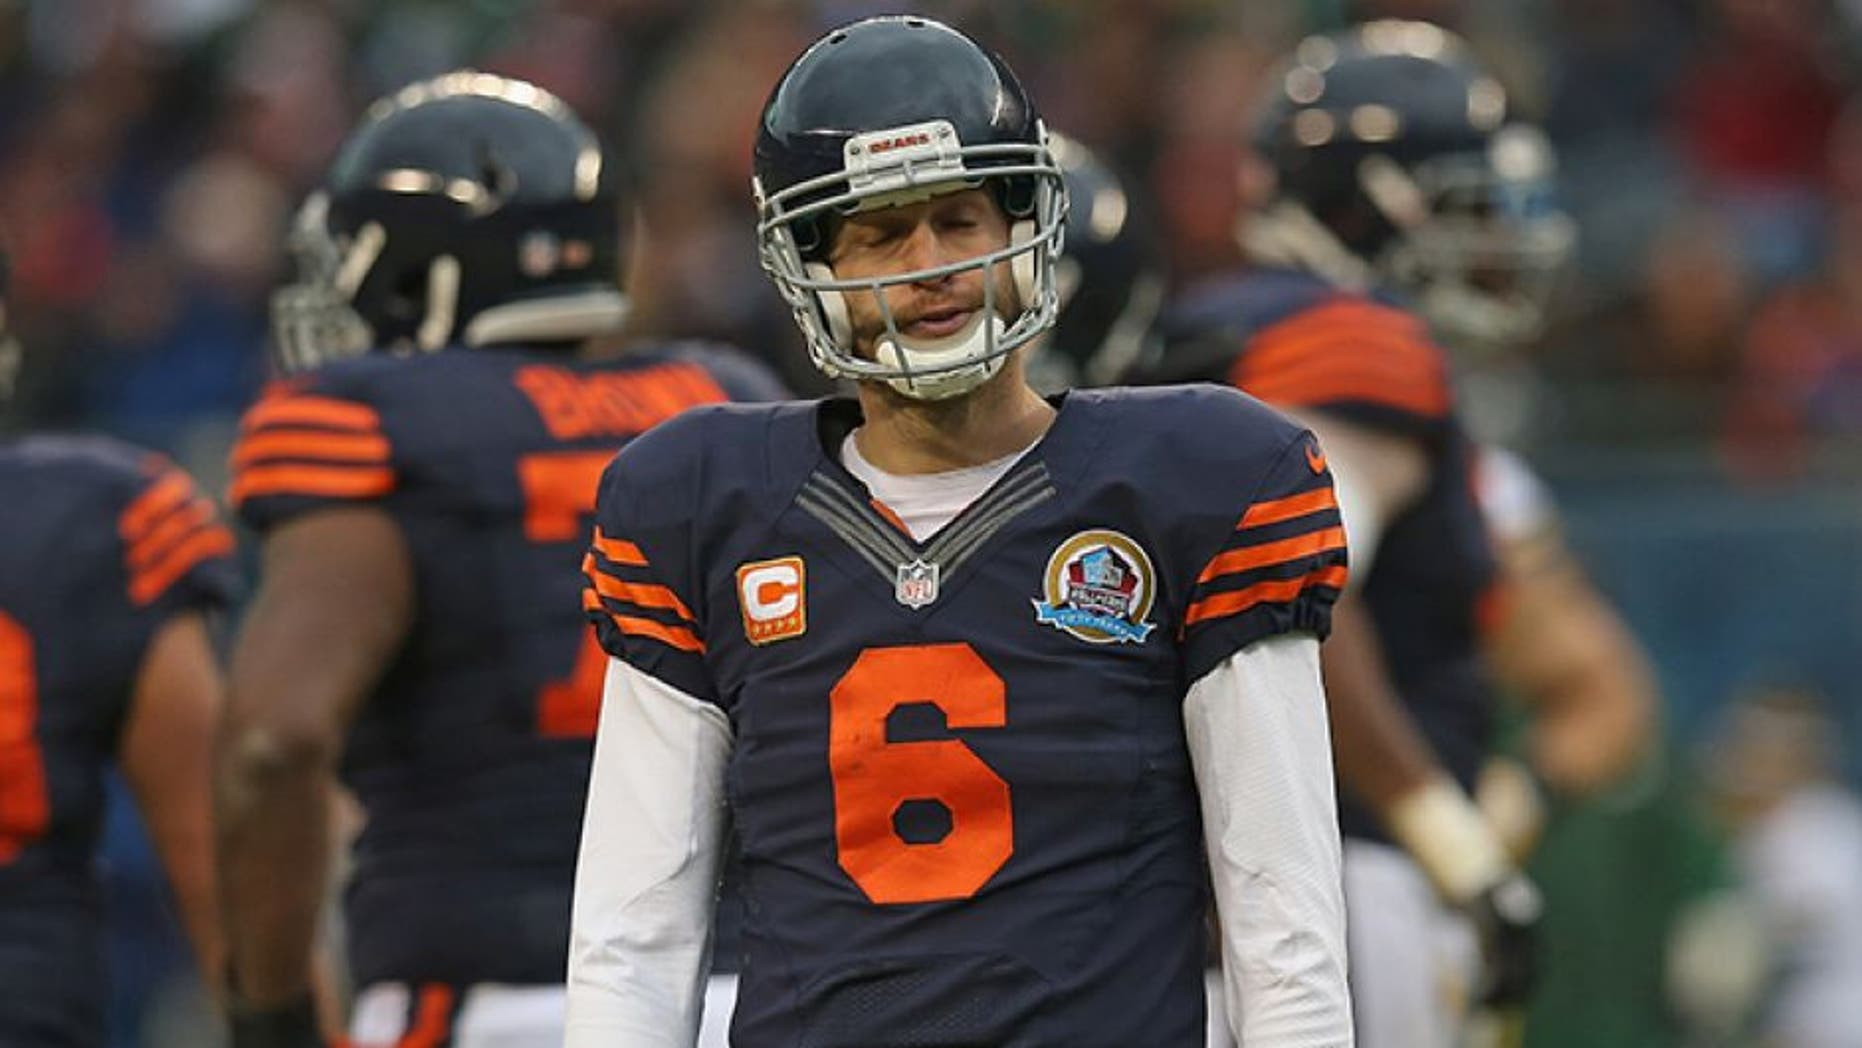 CHICAGO, IL - DECEMBER 16: Jay Cutler #6 of the Chicago Bears reacts after an incomplete pass during a game against the Green Bay Packers at Soldier Field on December 16, 2012 in Chicago, Illinois. The Packers defeated the Bears 21-13. (Photo by Jonathan Daniel/Getty Images)